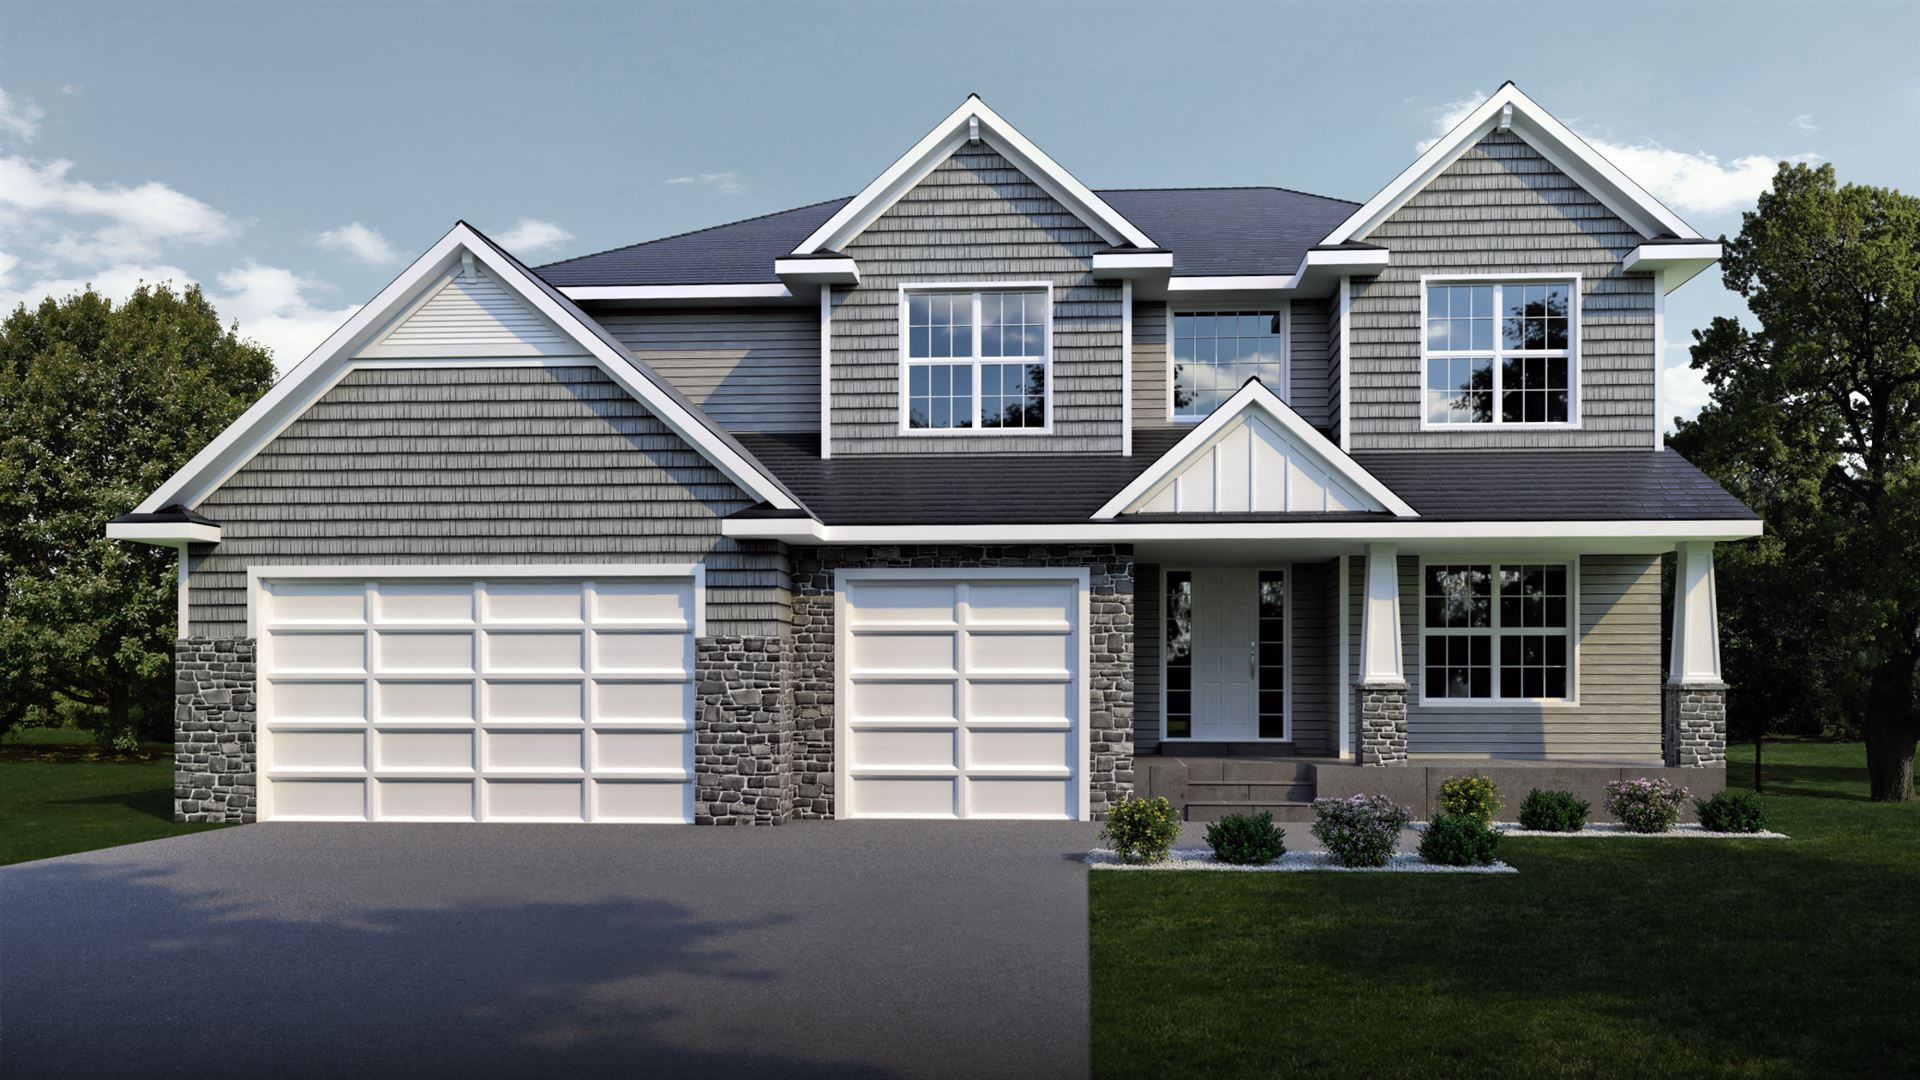 Photo of 8405 186th St W W, Lakeville, MN 55044 (MLS # 6101744)